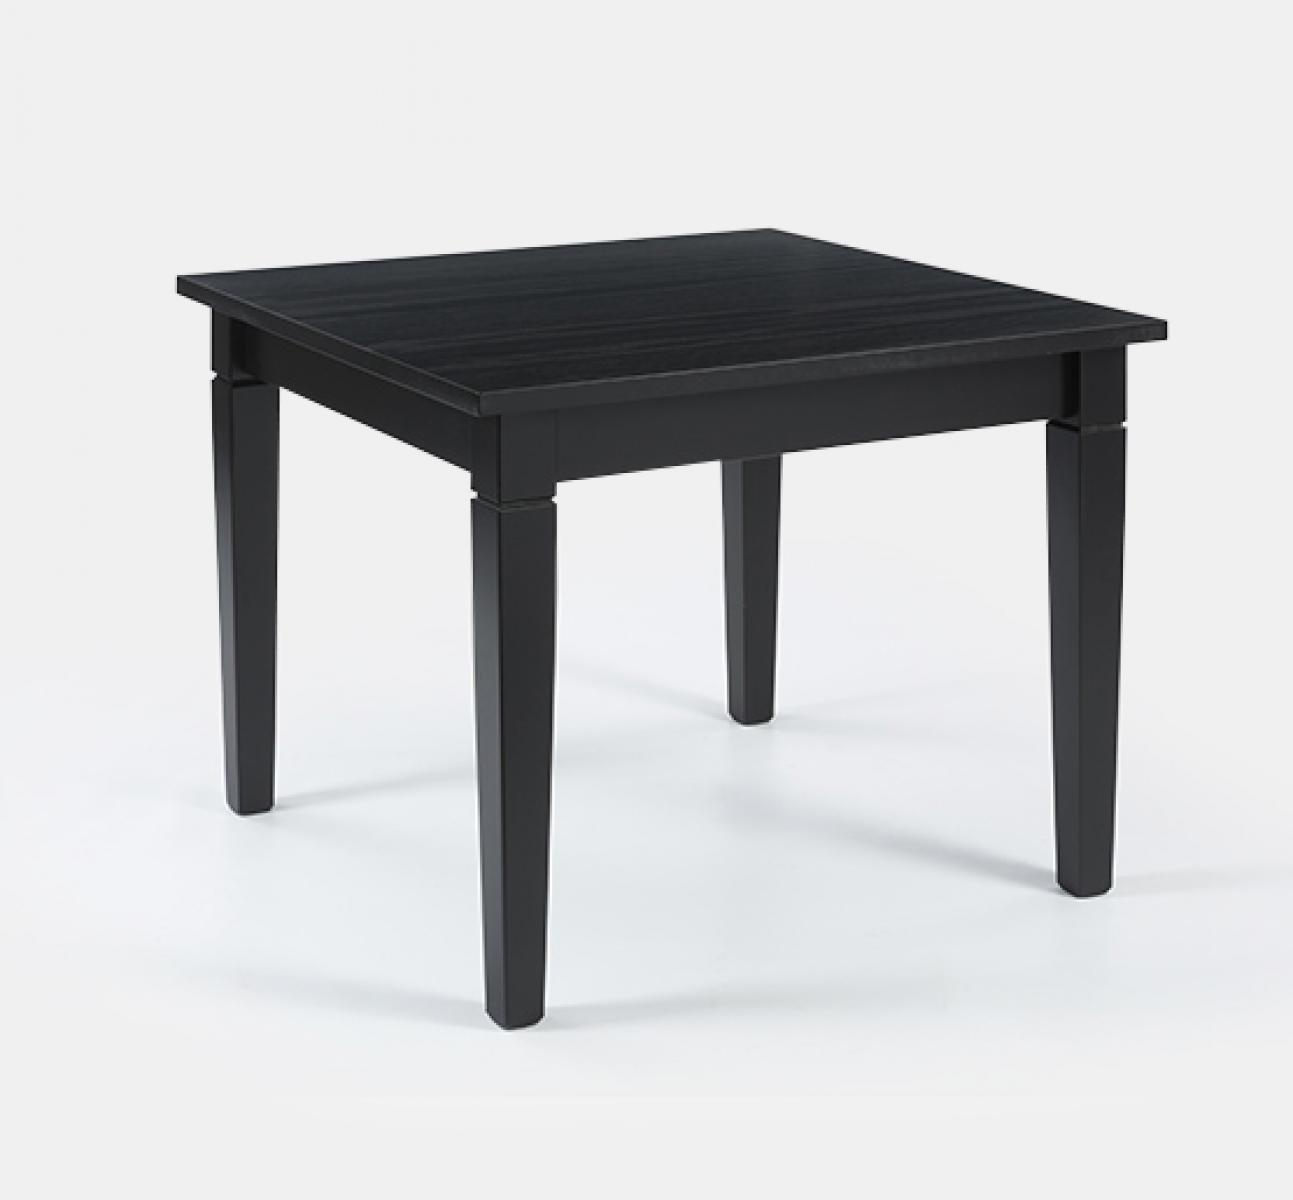 Bernard Dining Table (800x800mm)